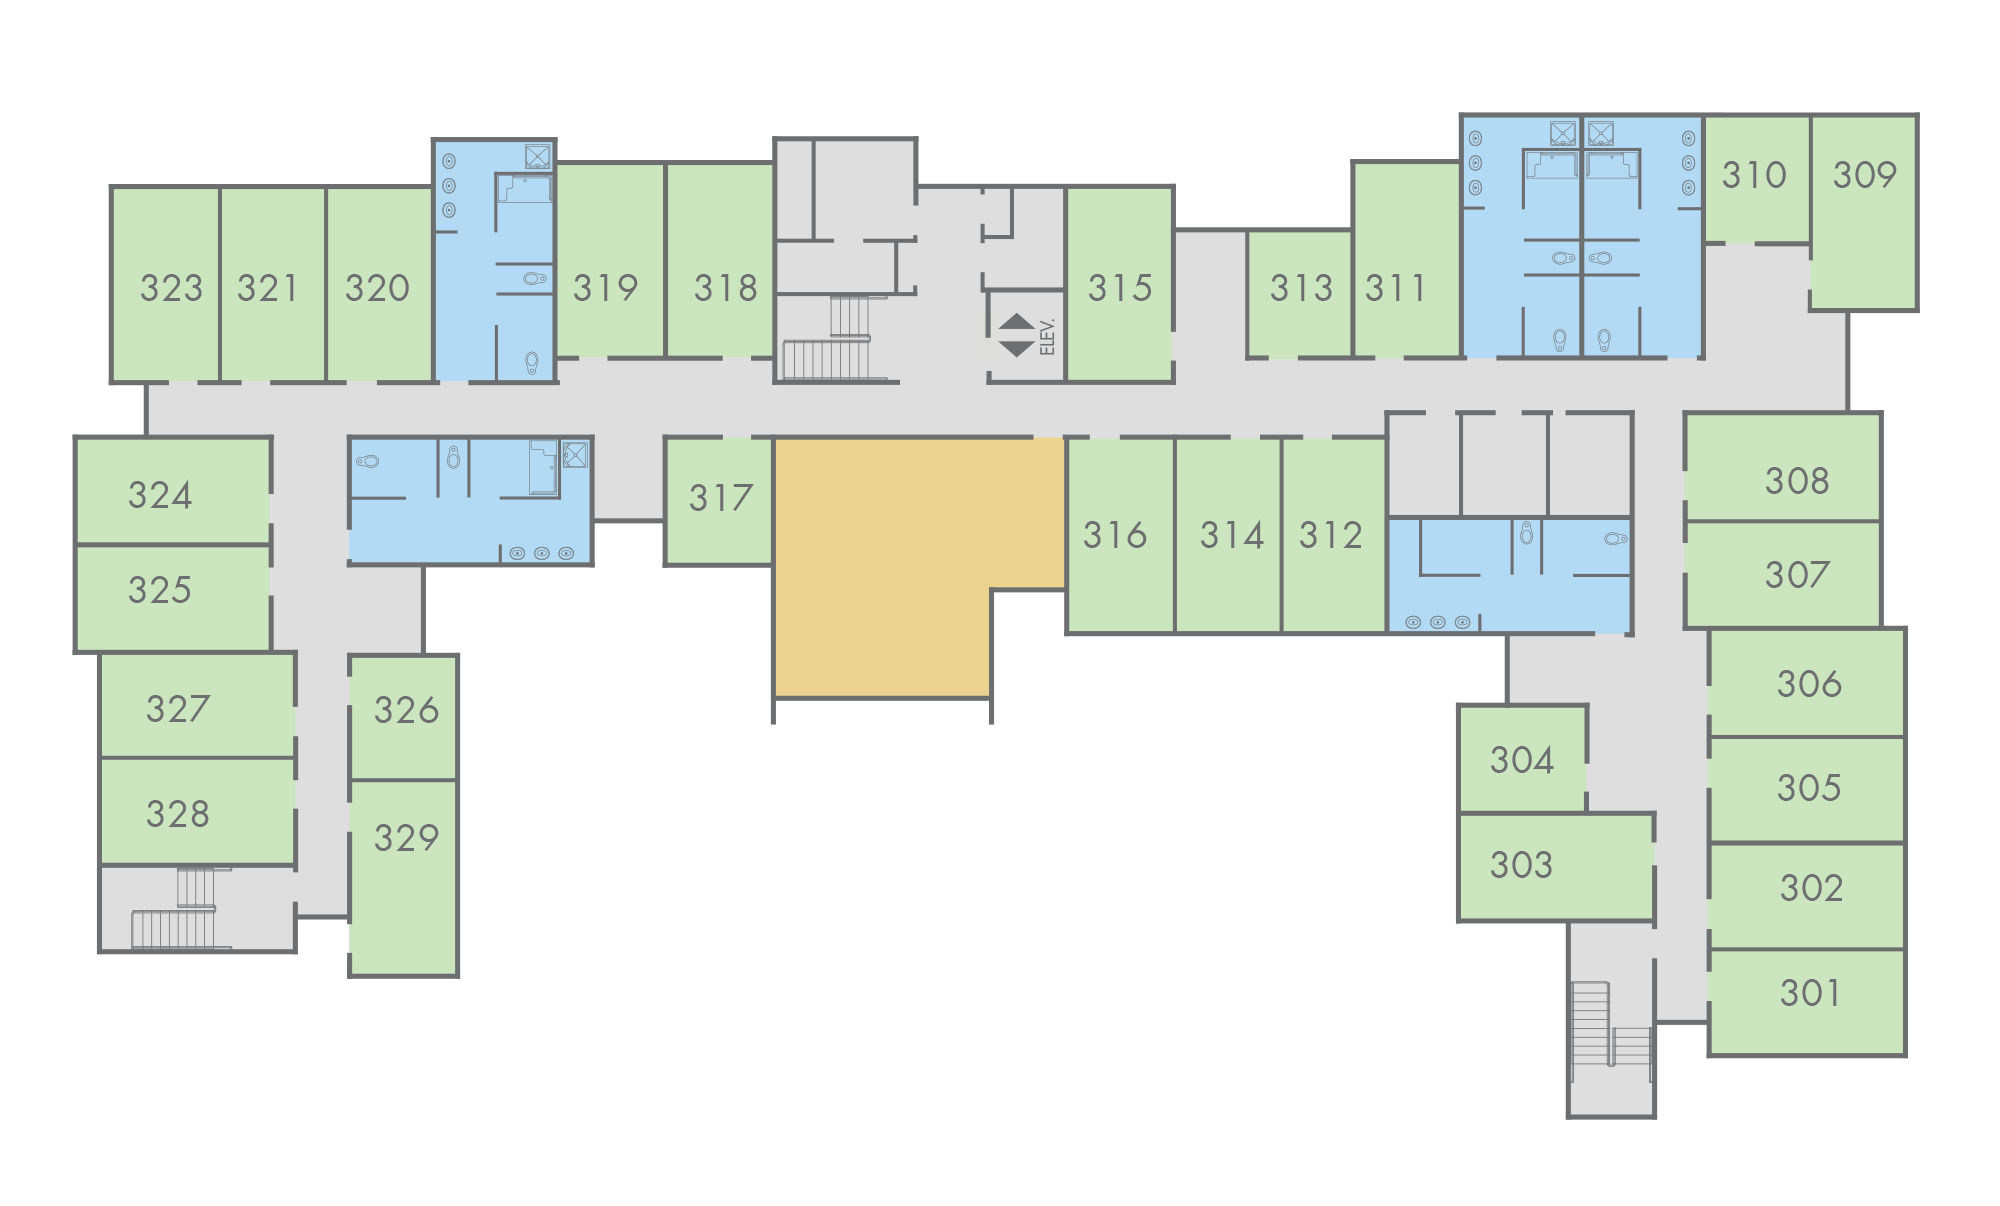 Floor Plan: Live Oak Hall, Third Floor